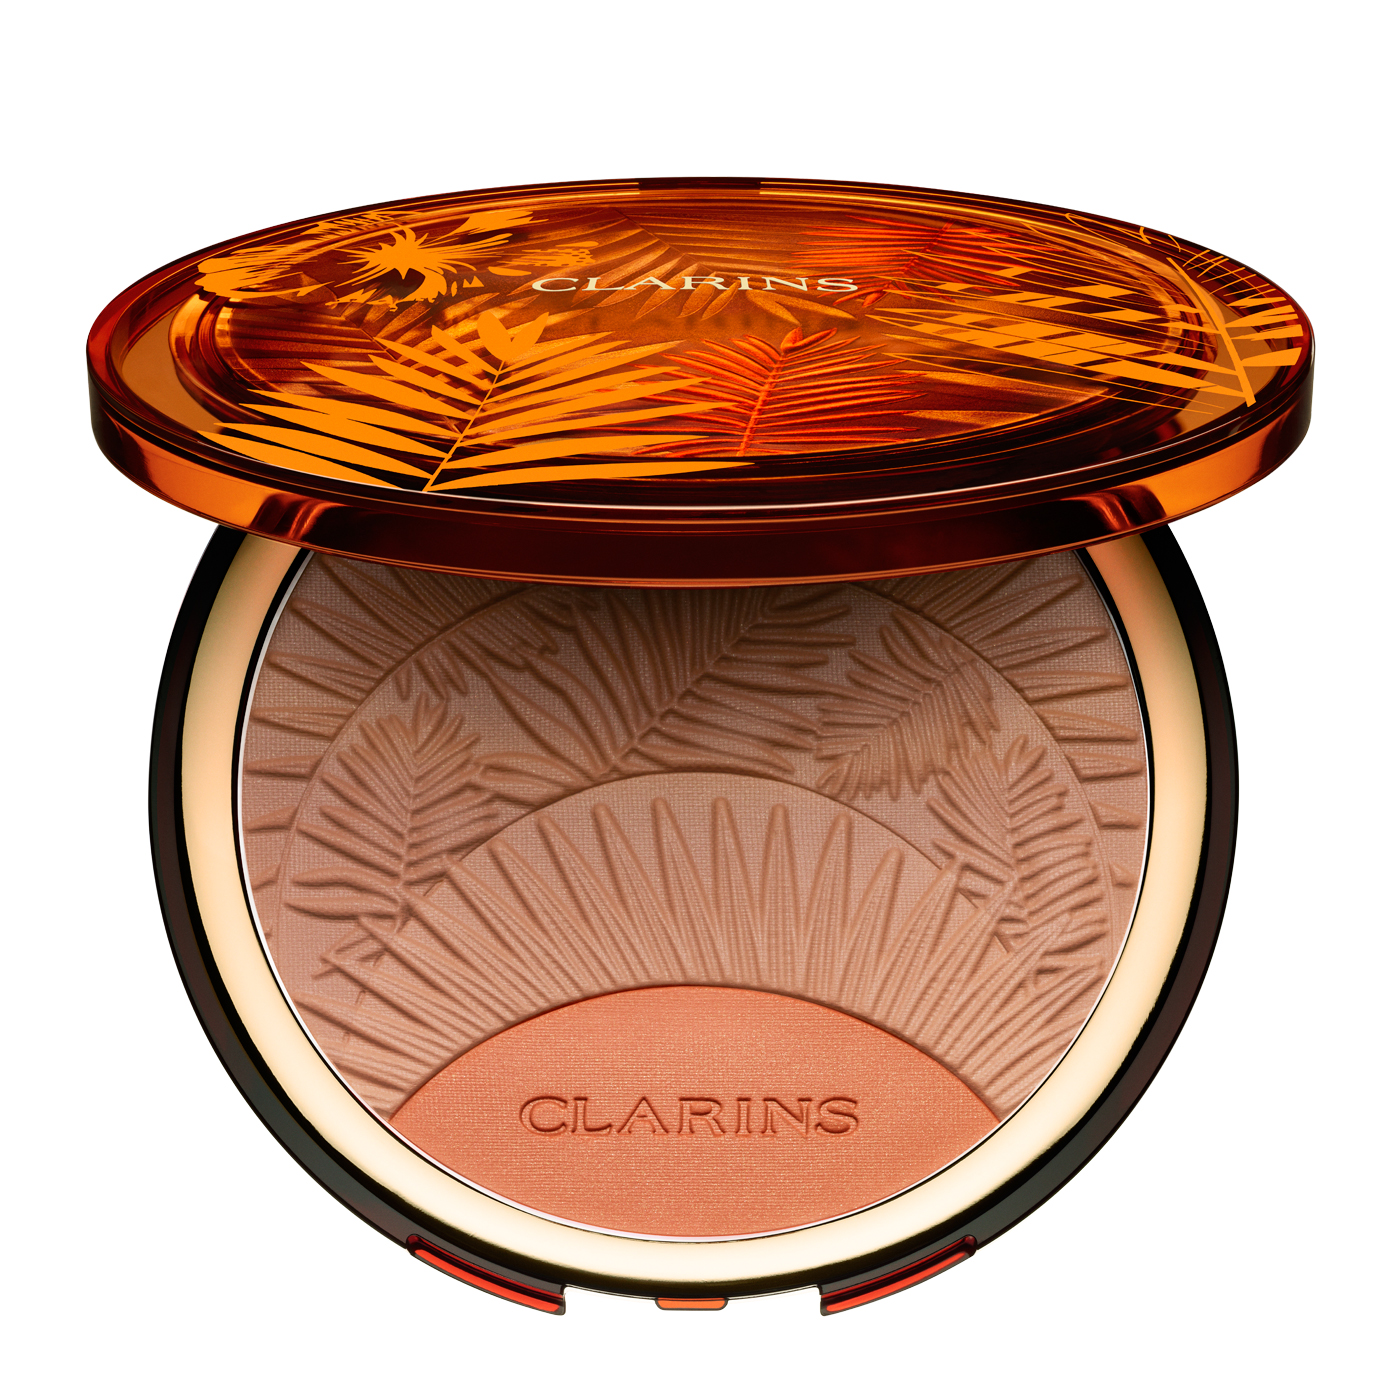 Limited Edition Summer Bronzing Amp Blush Compact Clarins